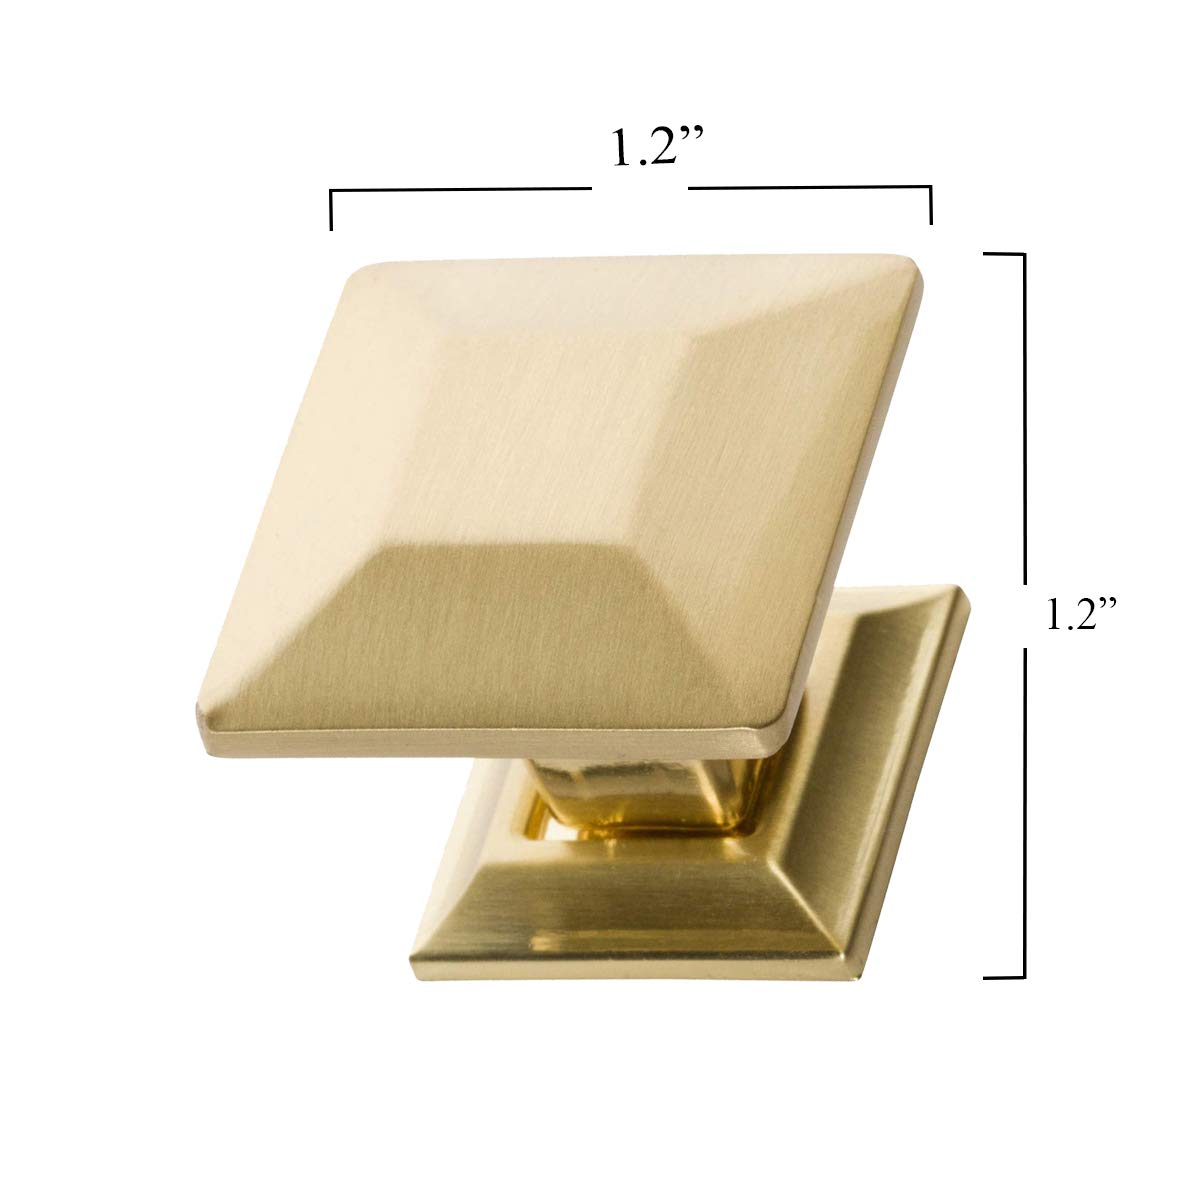 Southern Hills Brushed Brass Cabinet Knobs 1.25 Inch Square Pack of 5 Satin Brass Drawer Pulls SHKM006-BRS-5